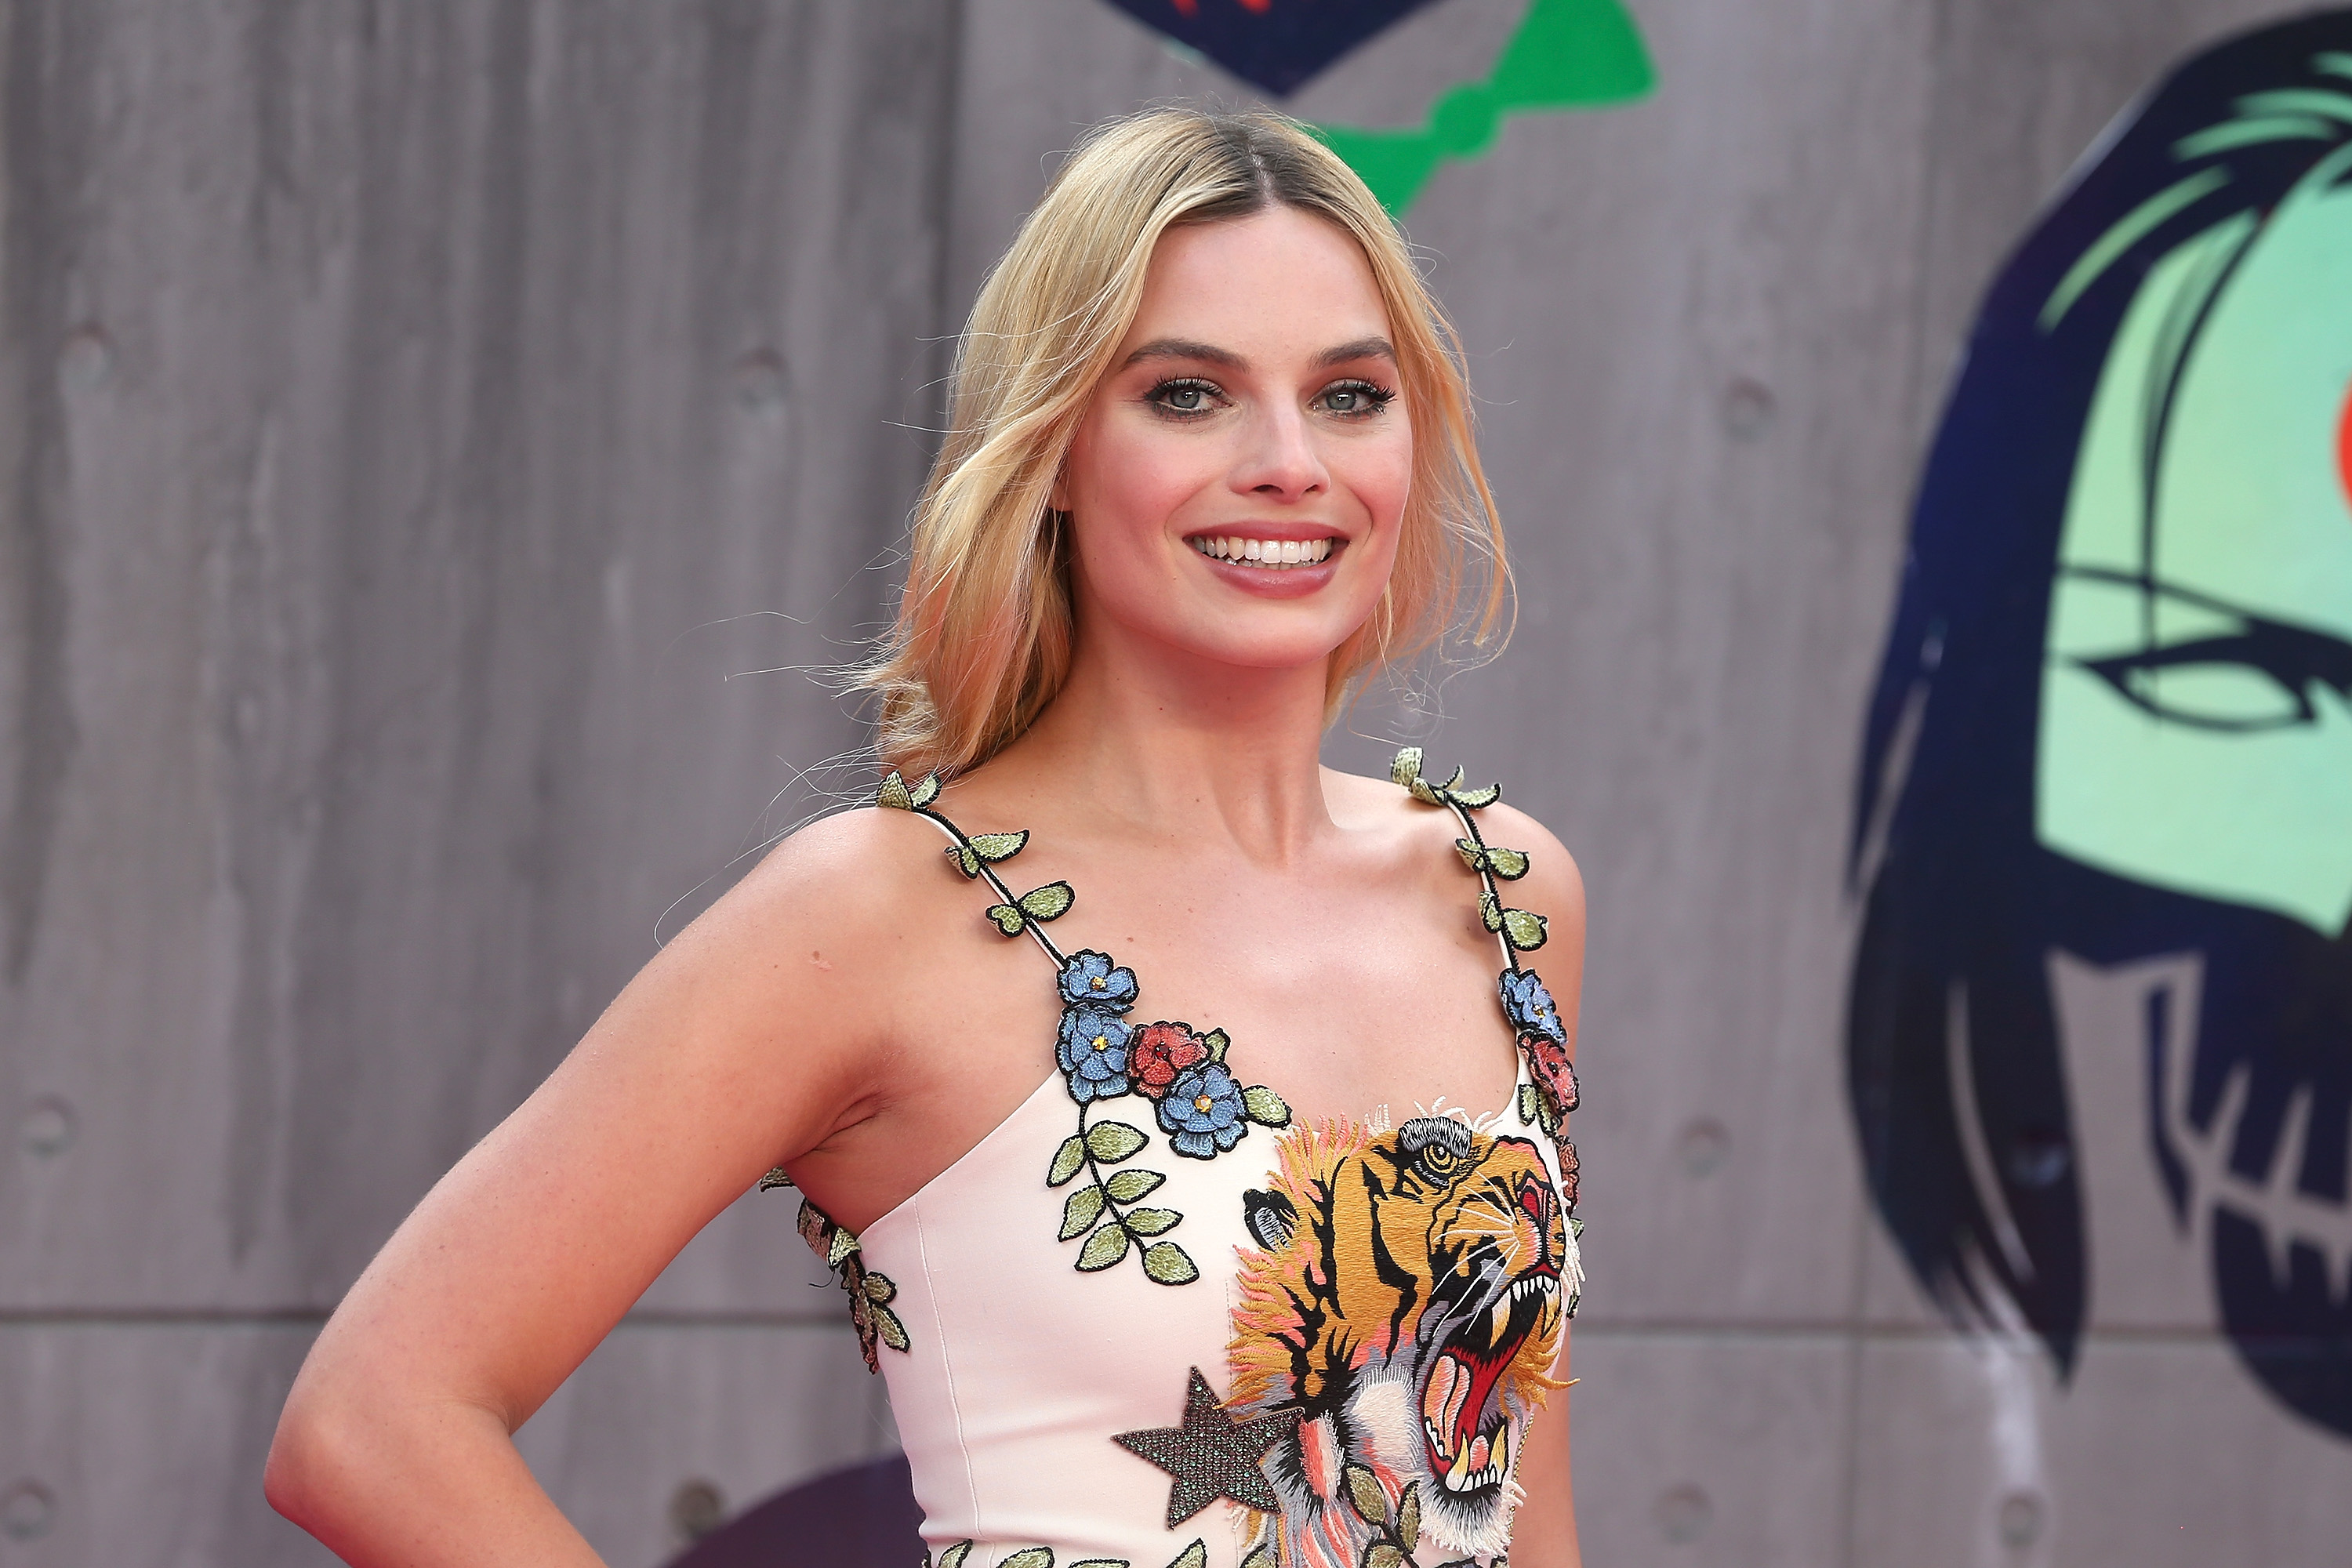 Margot Robbie attends the European Premiere of  Suicide Squad  at Odeon Leicester Square on August 3, 2016 in London, England.